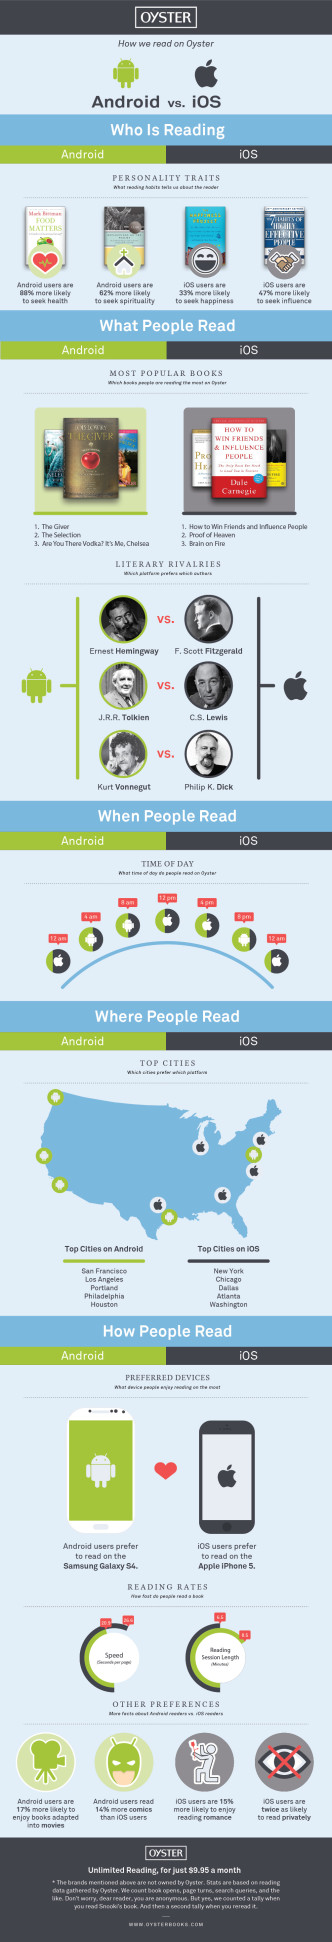 Reading on #Android vs #iOS #infographic